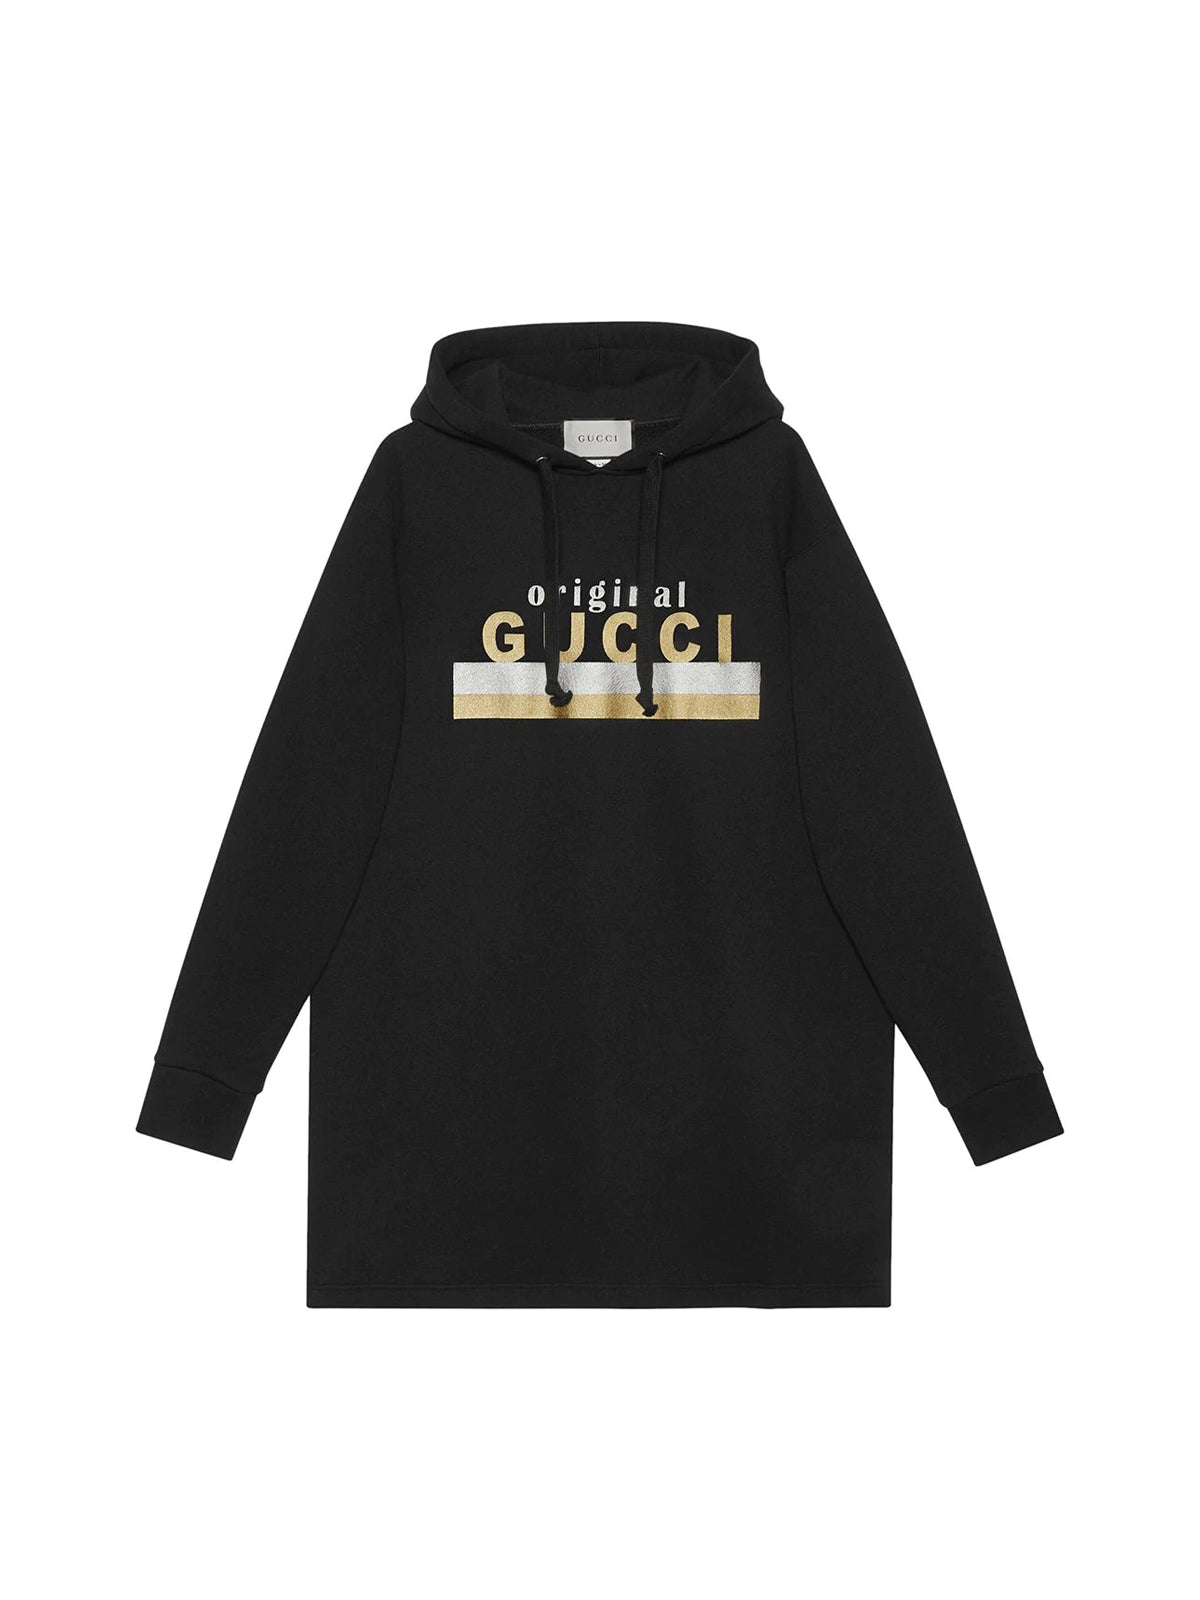 """Original Gucci"" print hooded dress"